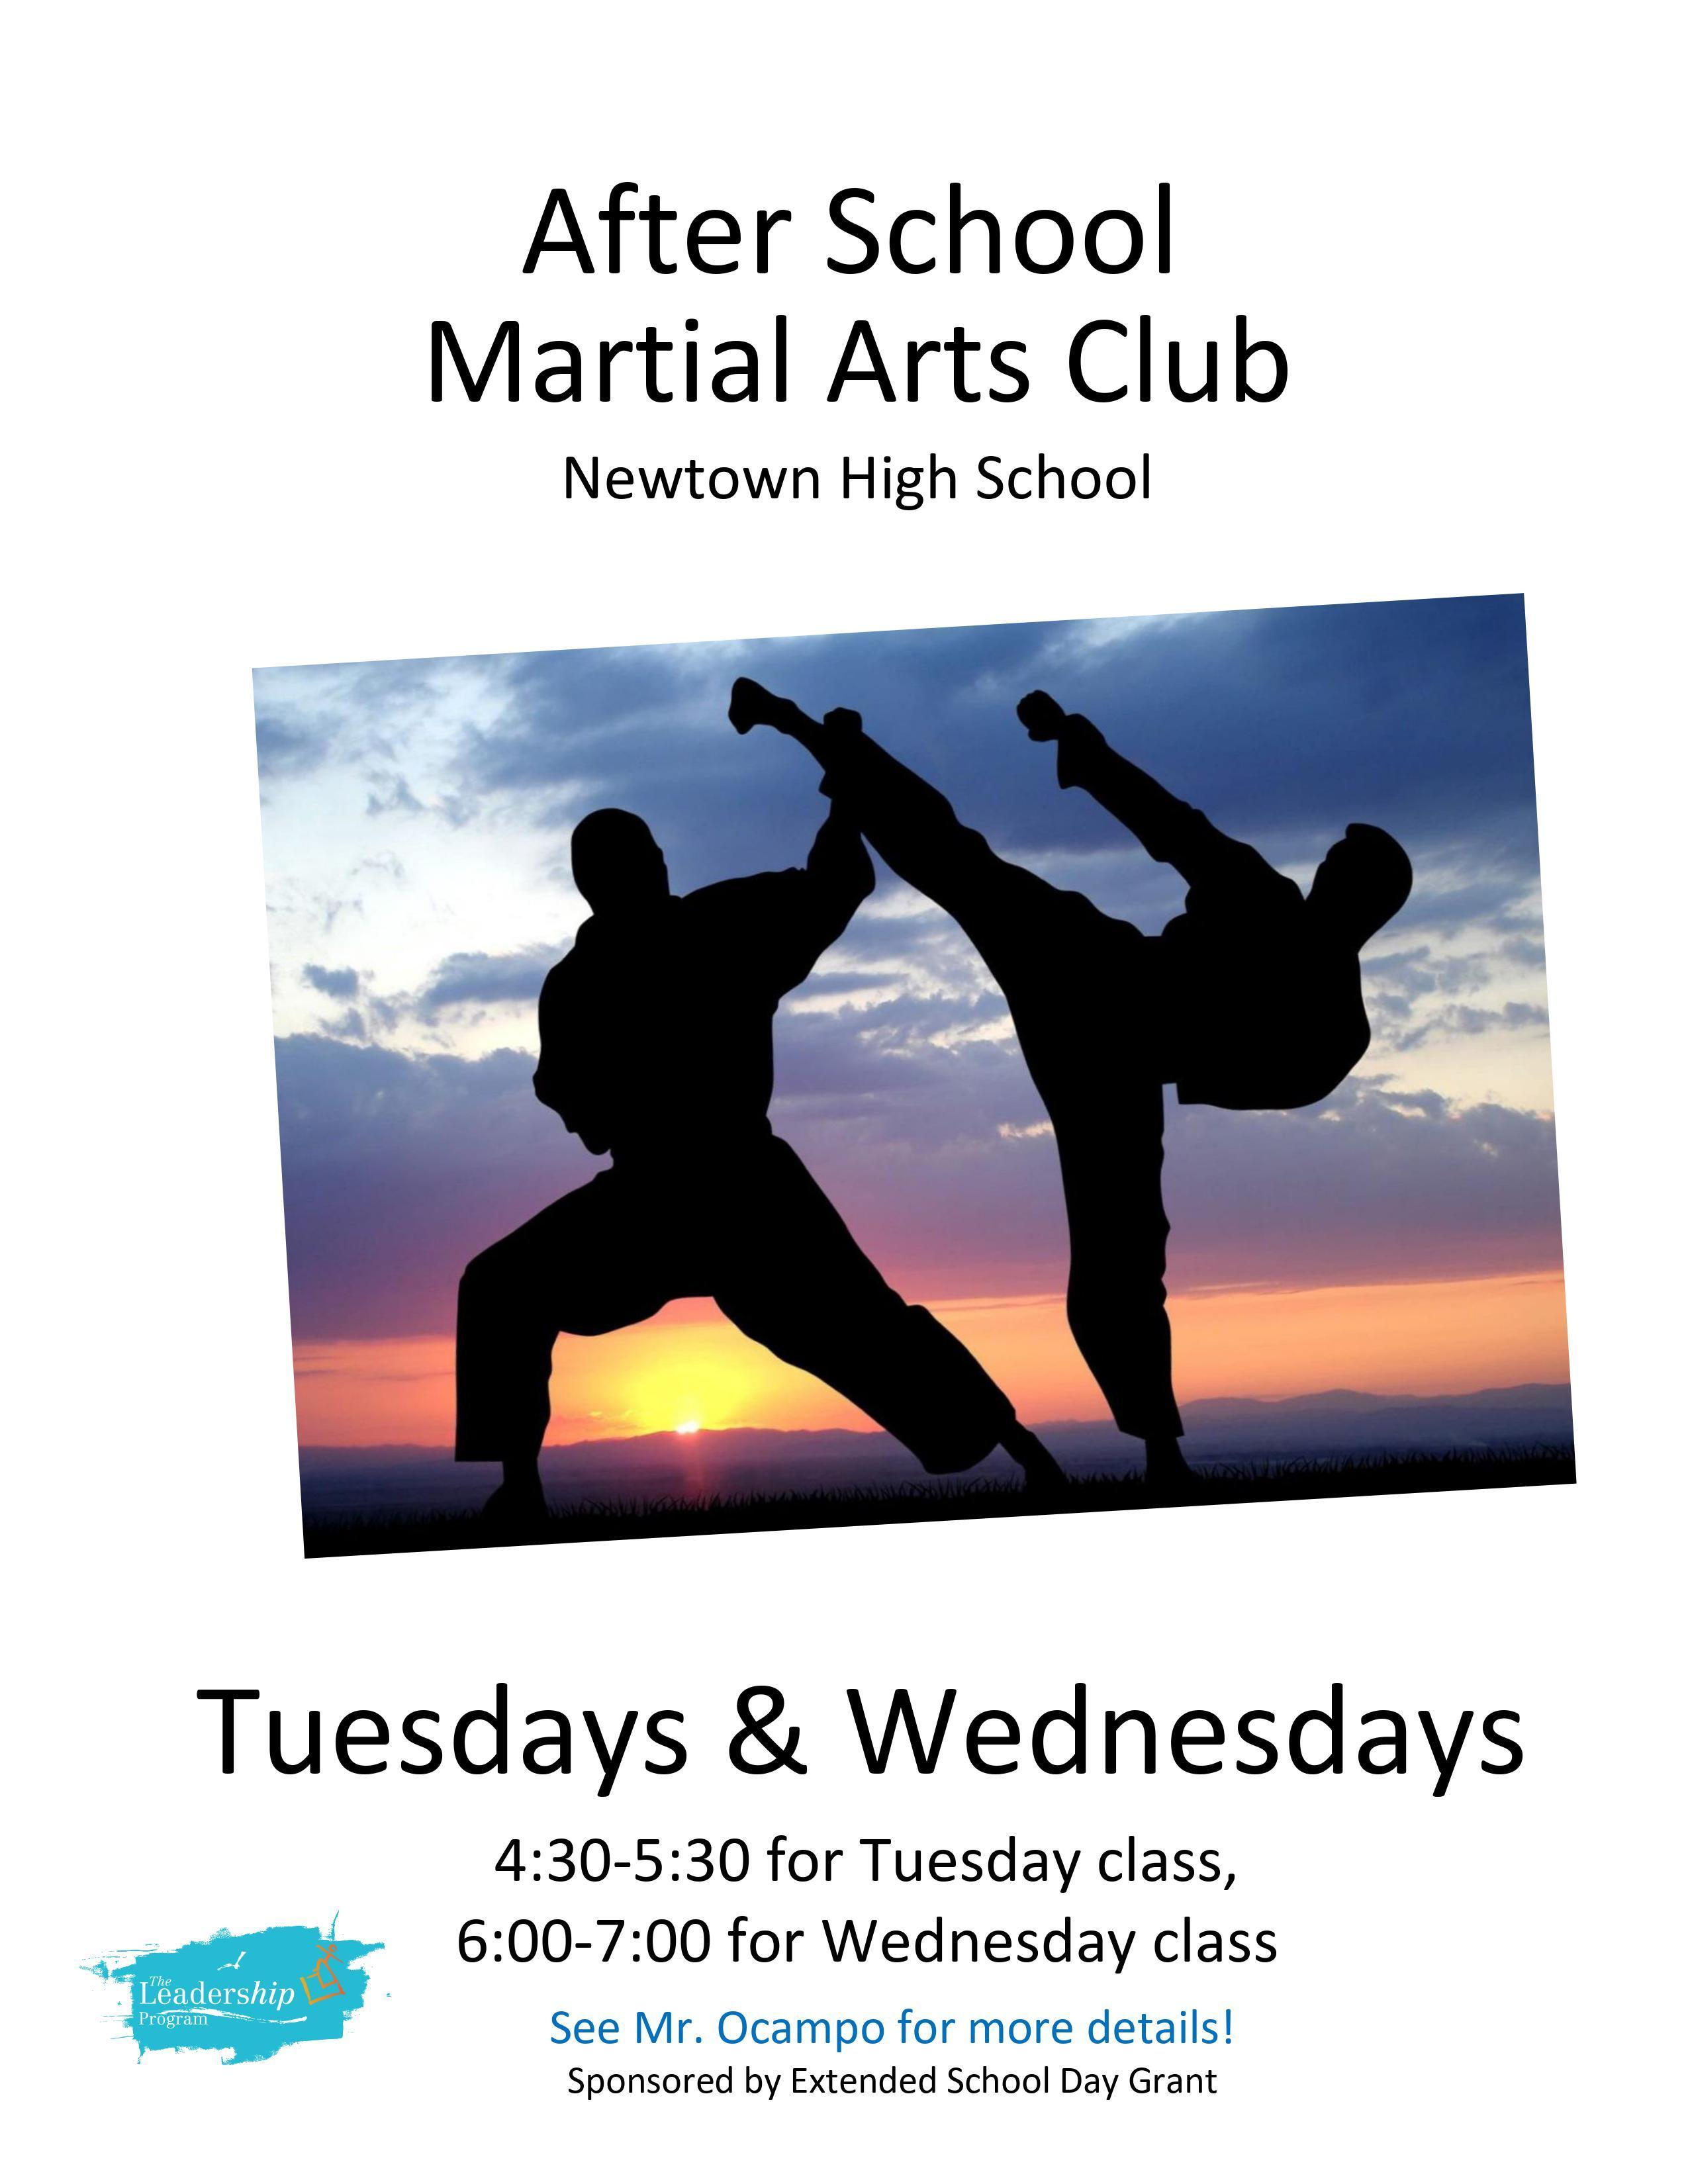 After School Martial Arts Club, Tuesdays & Wednesdays 4:30-5:30 for Tue; 6-7 for Wed. See Mr. Ocampo for details!